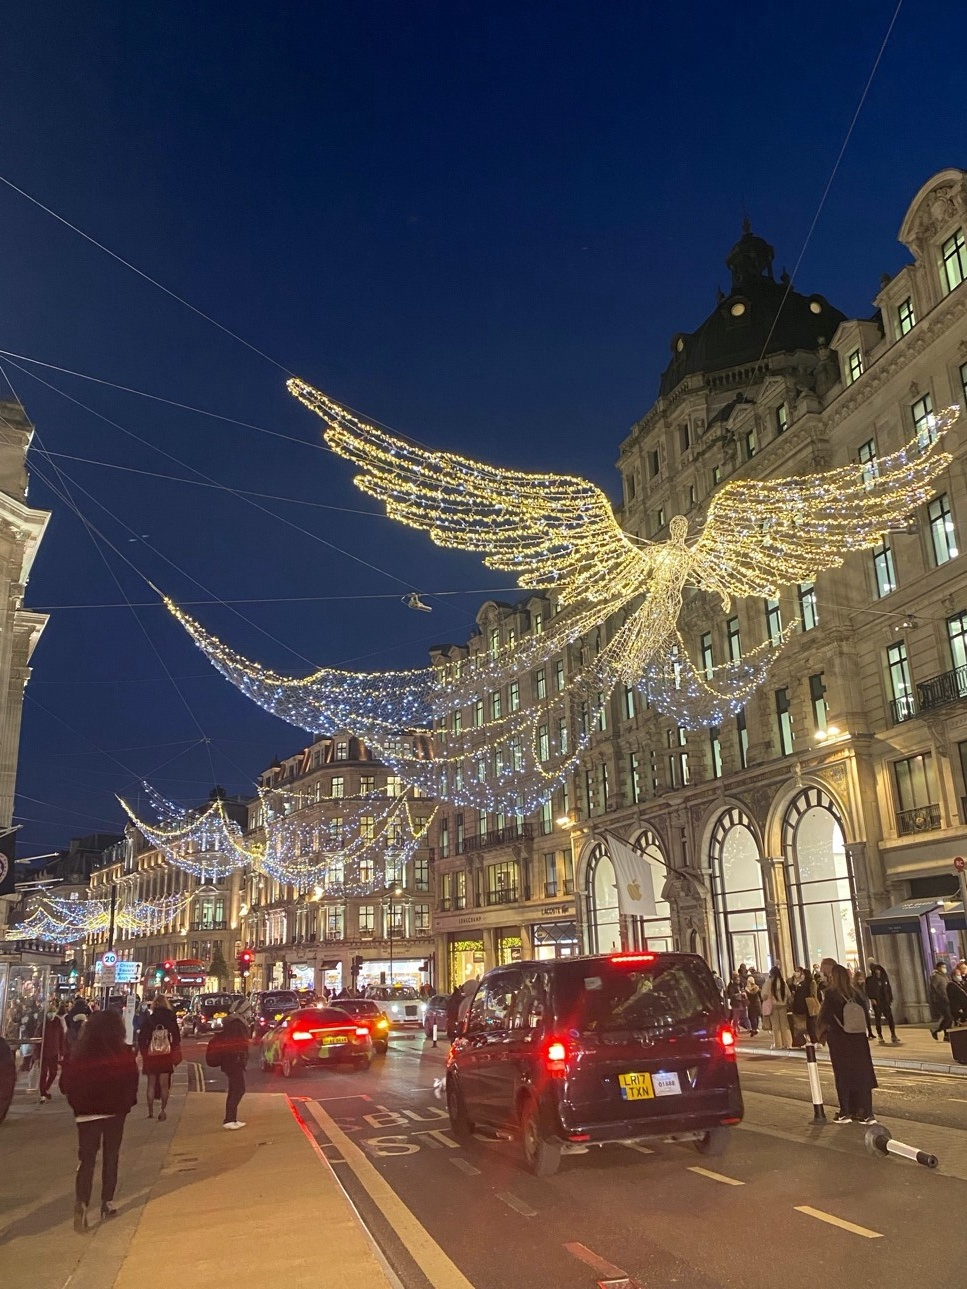 UK PM's refusal of tightening restrictions during Christmas receives mixed reactions